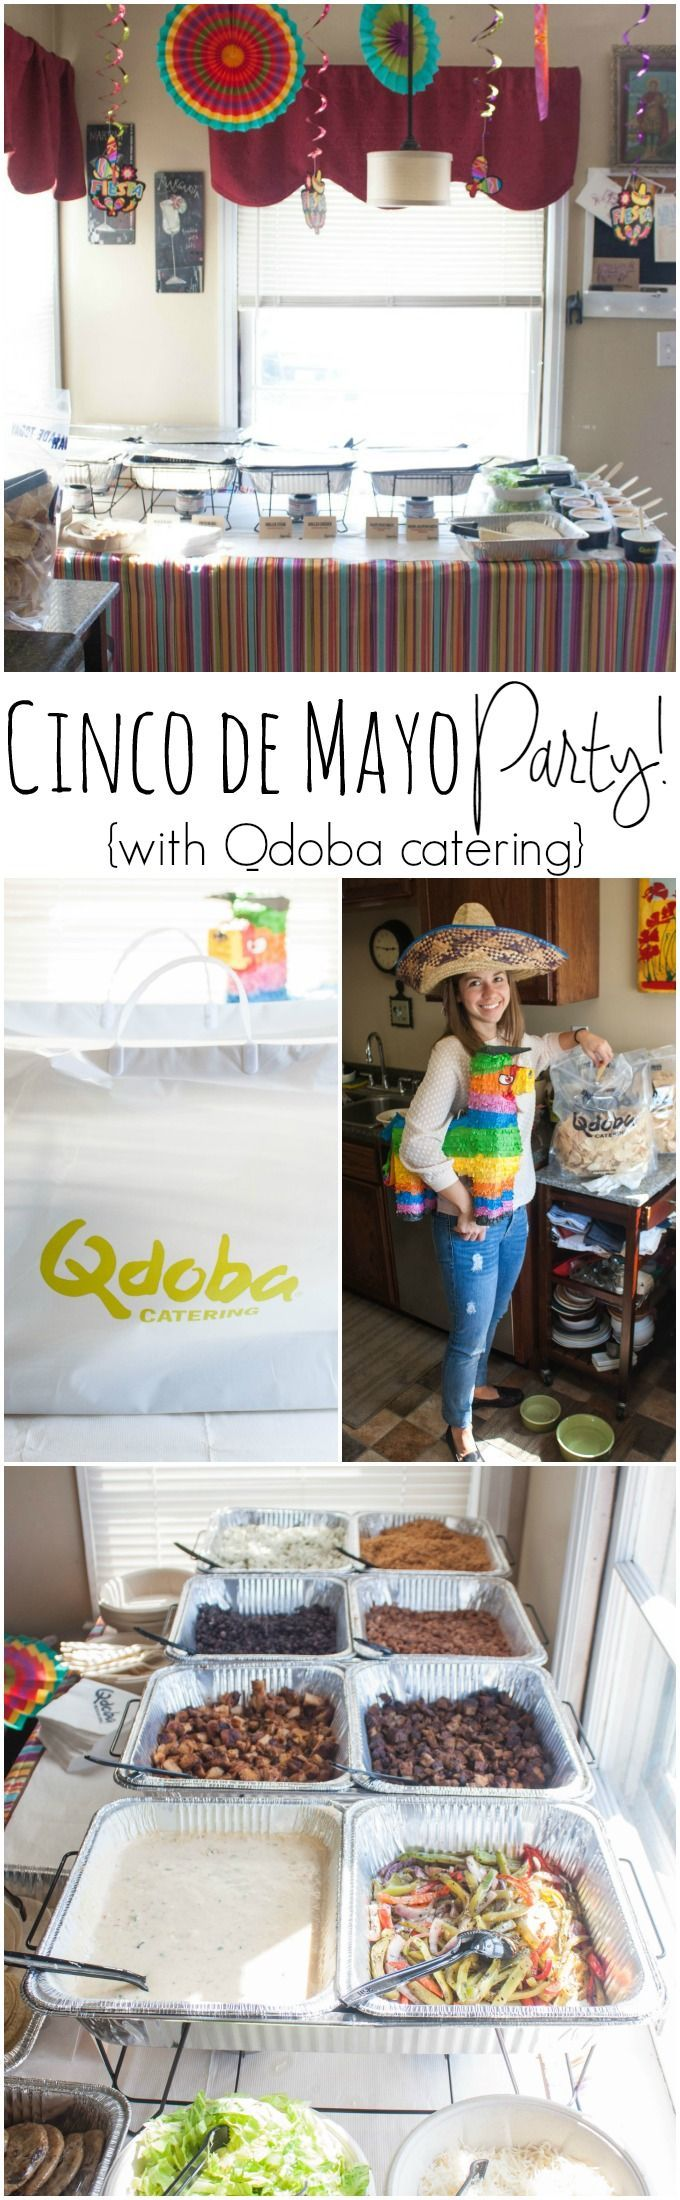 Cinco de Mayo party, cinco de mayo party ideas, cinco de mayo party with @qdobawi catering, how to throw a cinco de mayo party